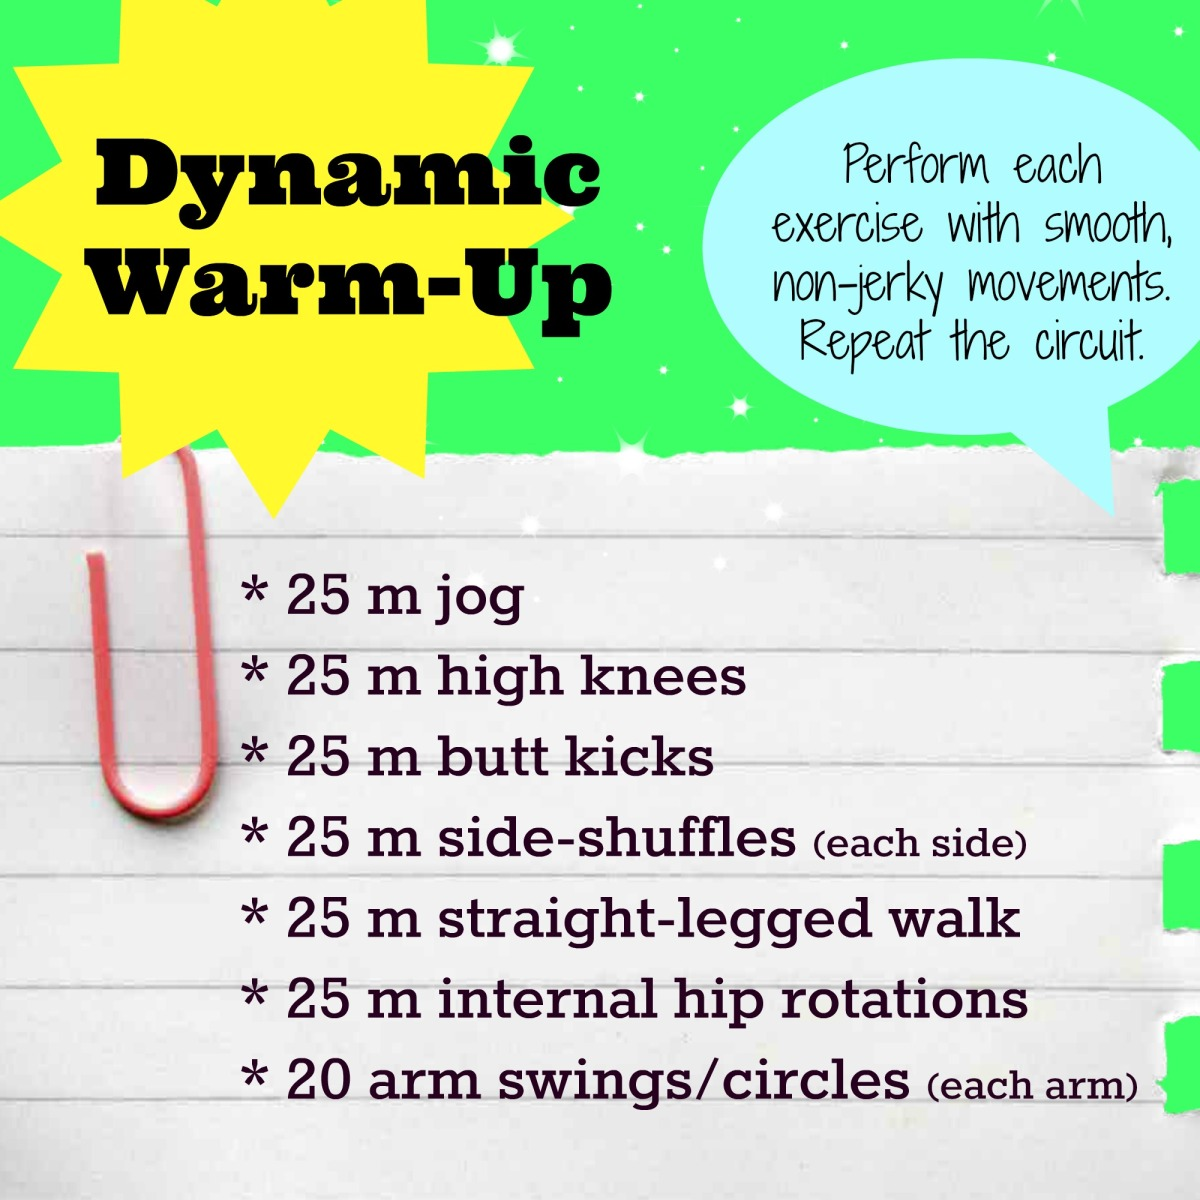 Don't Skimp on the Warm-Up!